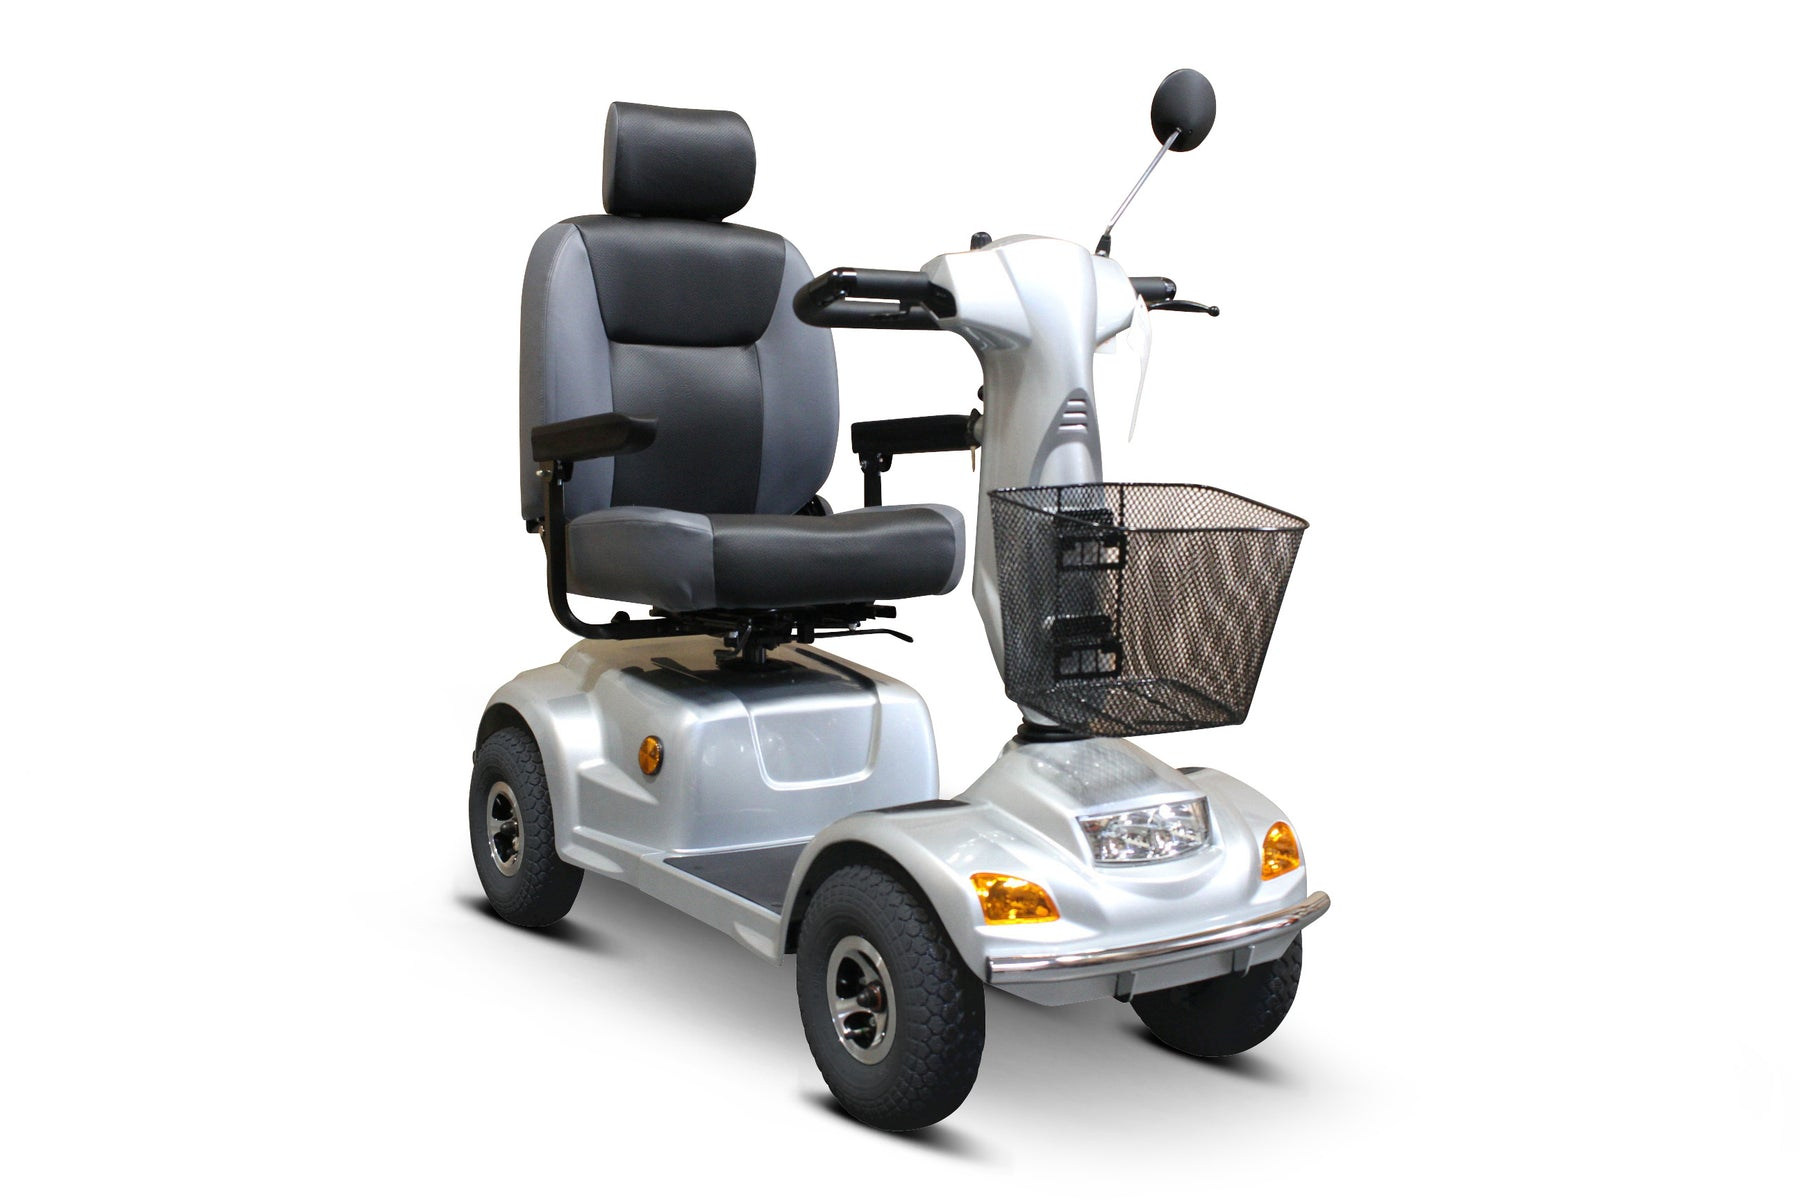 EW M93 4-Wheel Heavy-Duty Mobility Scooter right angle view